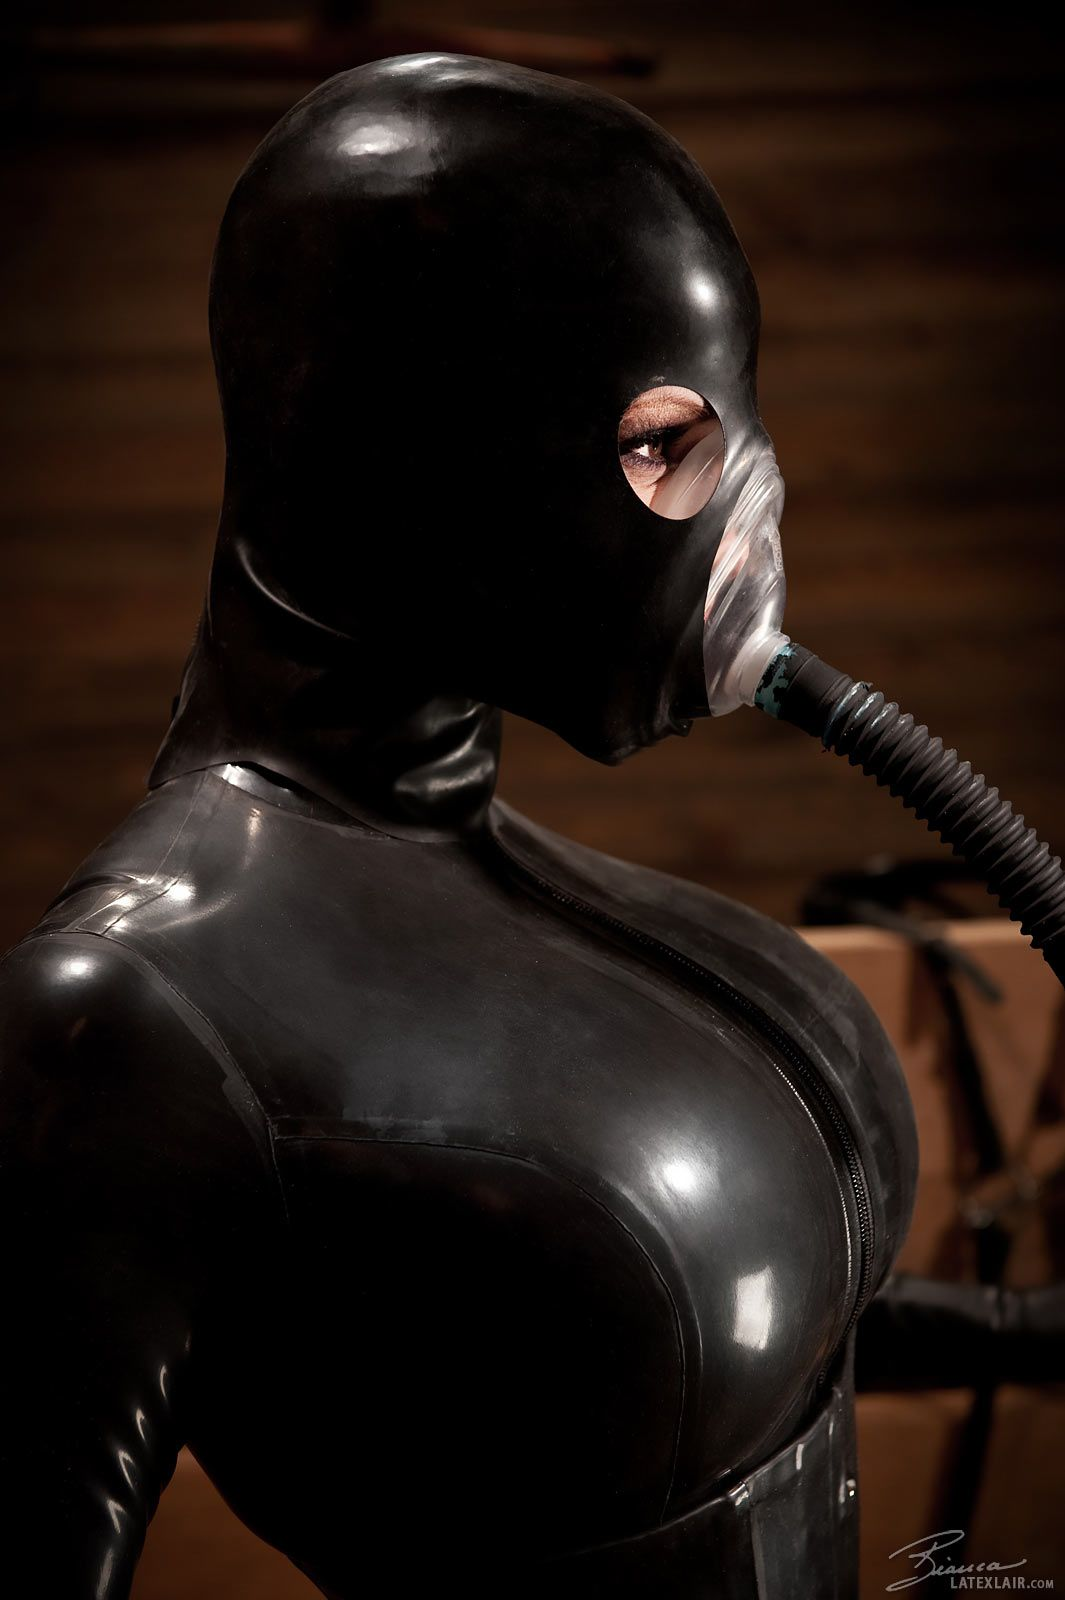 Charming message fetish hood leather mask rubber